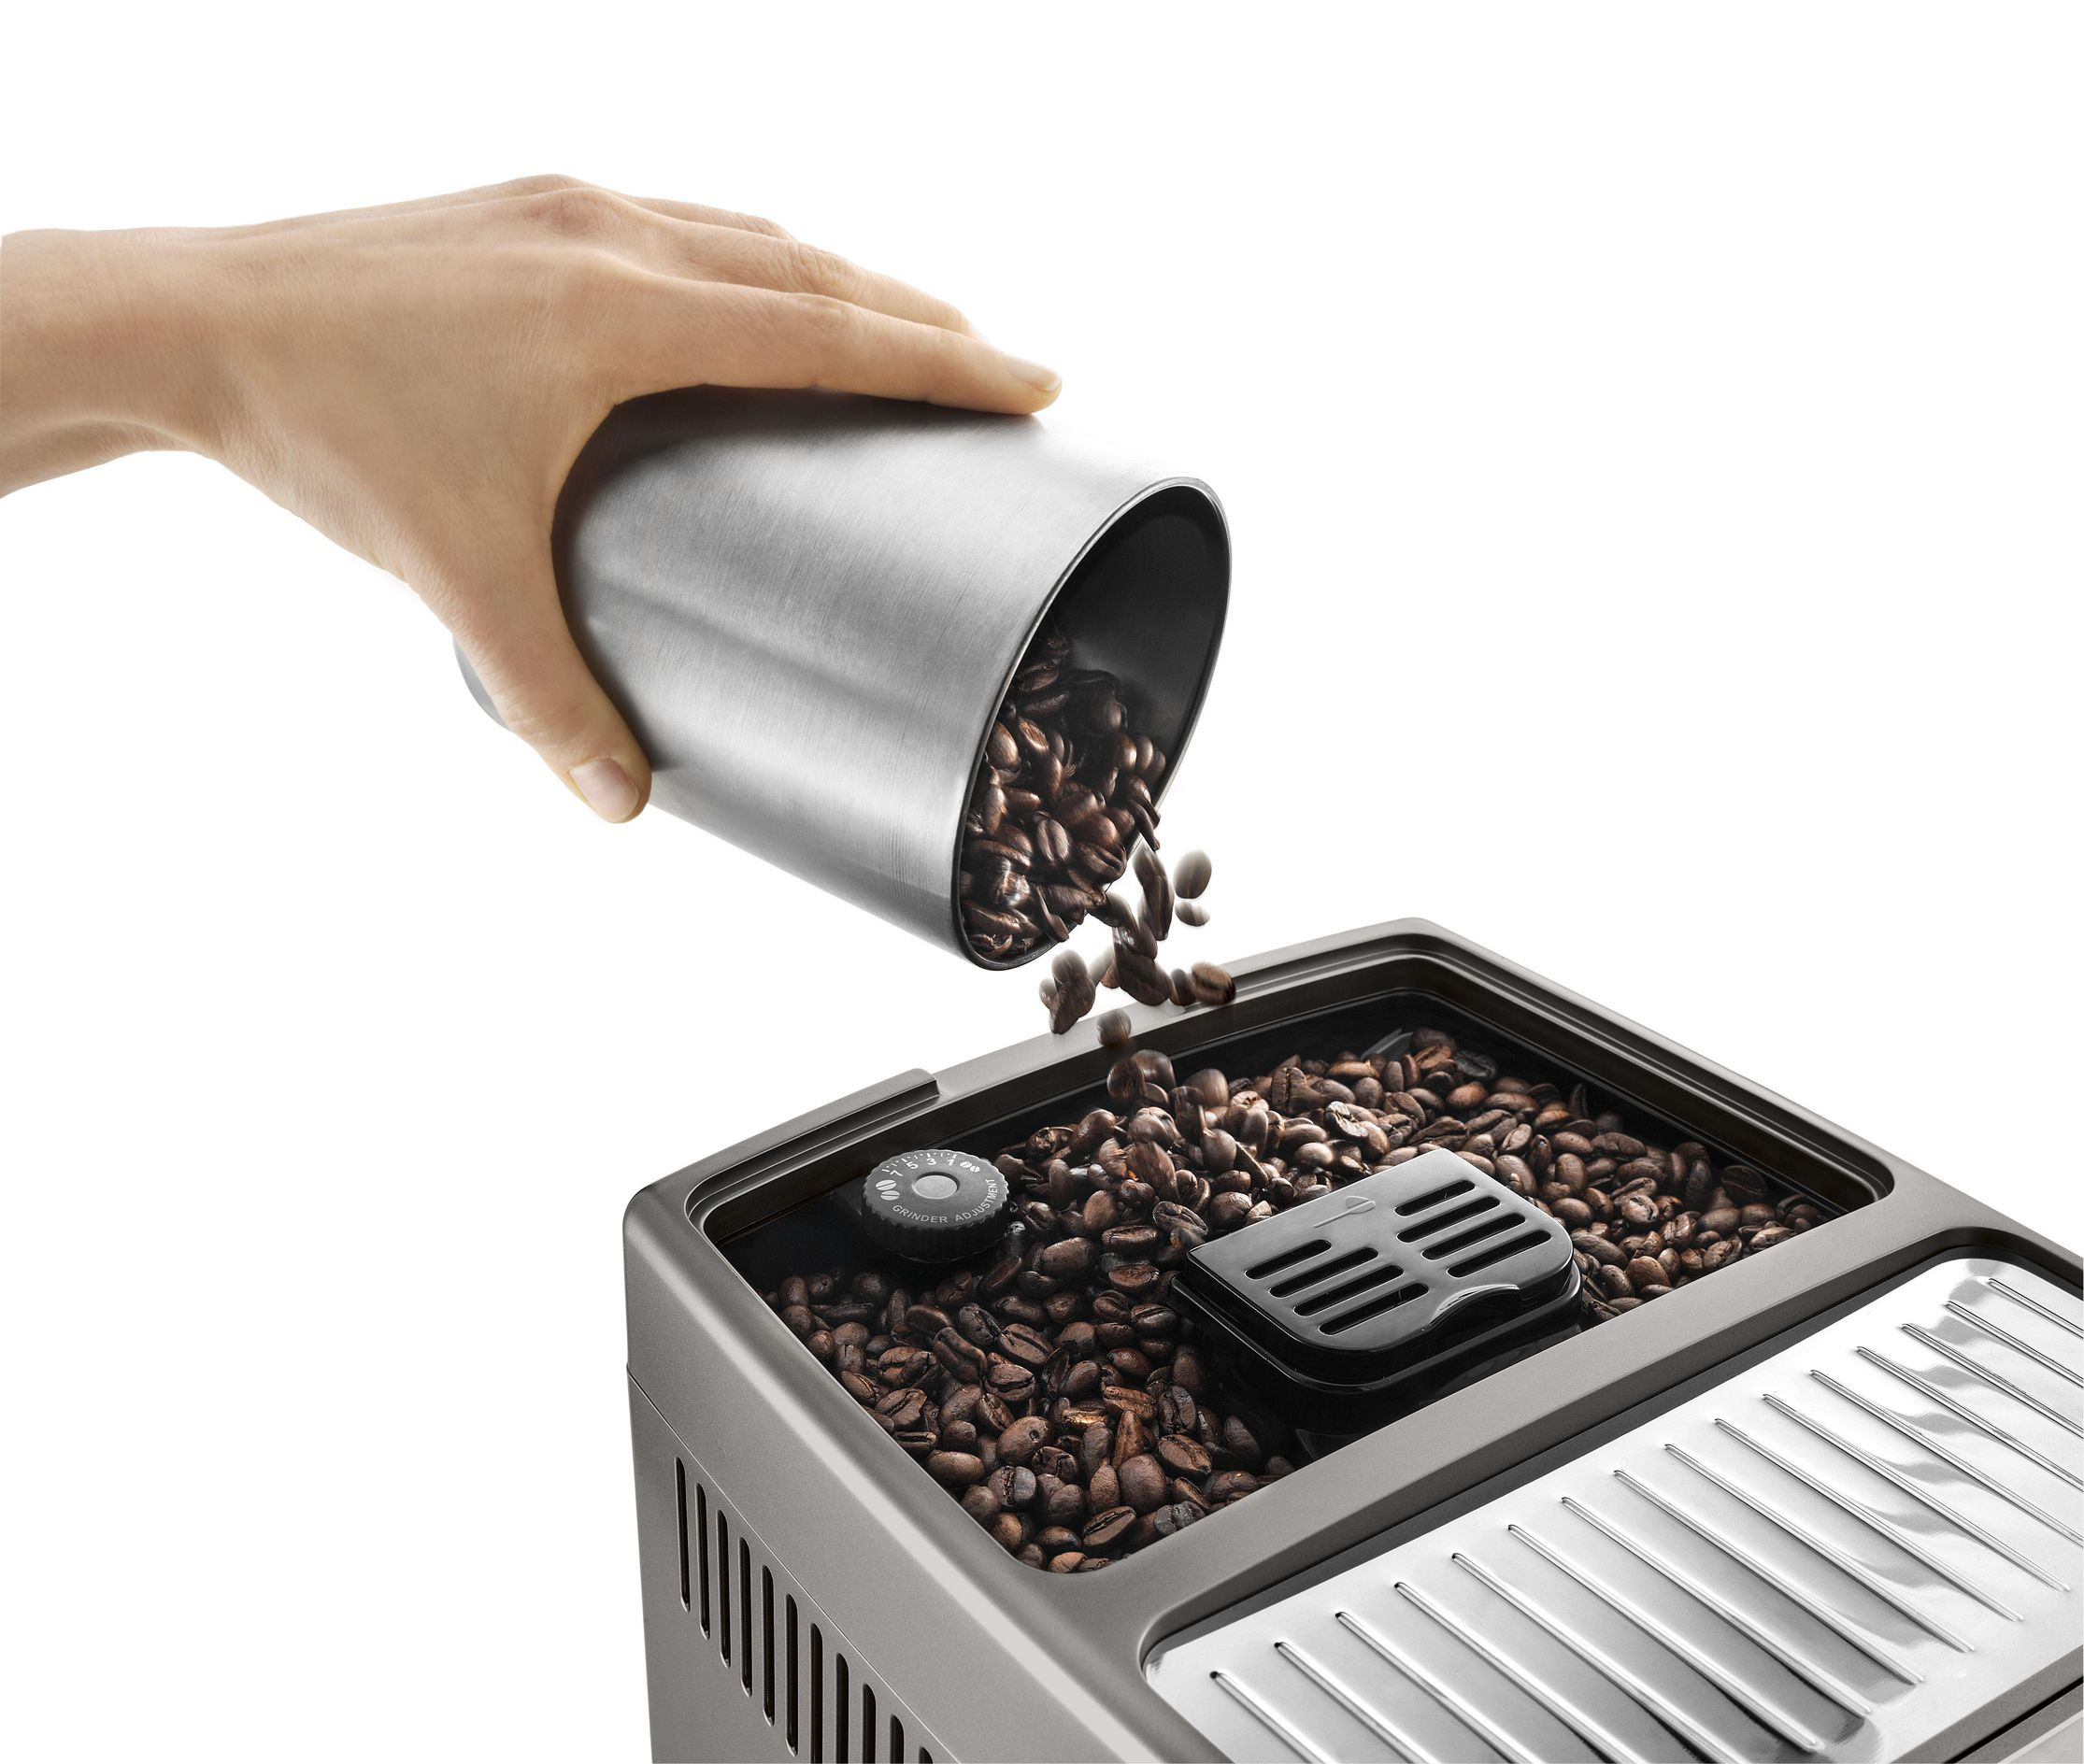 pouring coffee beans into a bean hopper of a coffee machine